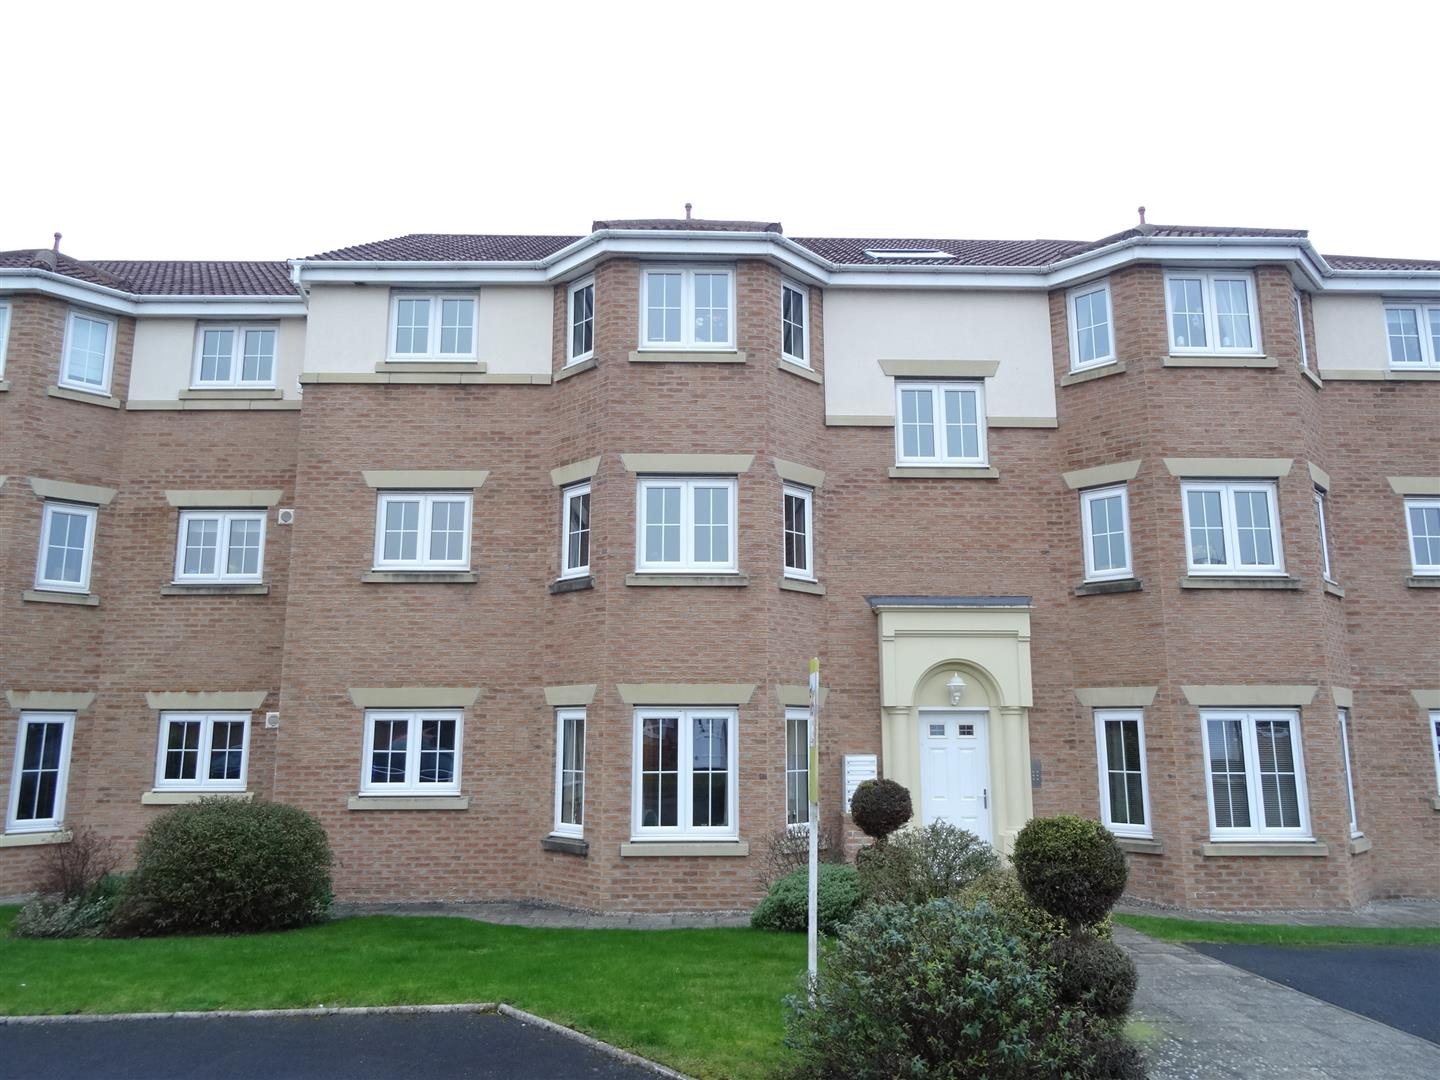 116 Watermans Walk Carlisle 2 Bedrooms Flat For Sale